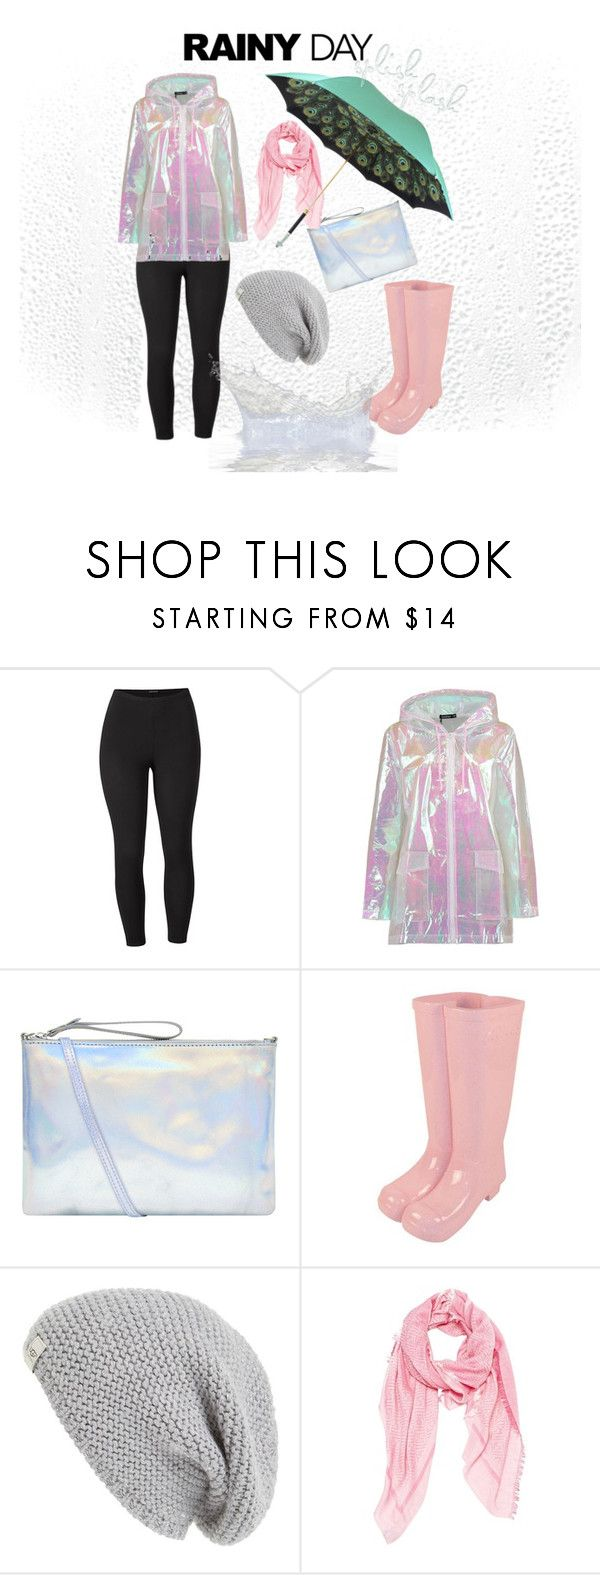 """""""Untitled #83"""" by mindlessmess ❤ liked on Polyvore featuring Venus, Boohoo, Accessorize, UGG Australia, Fendi, Pasotti Ombrelli and plus size clothing"""